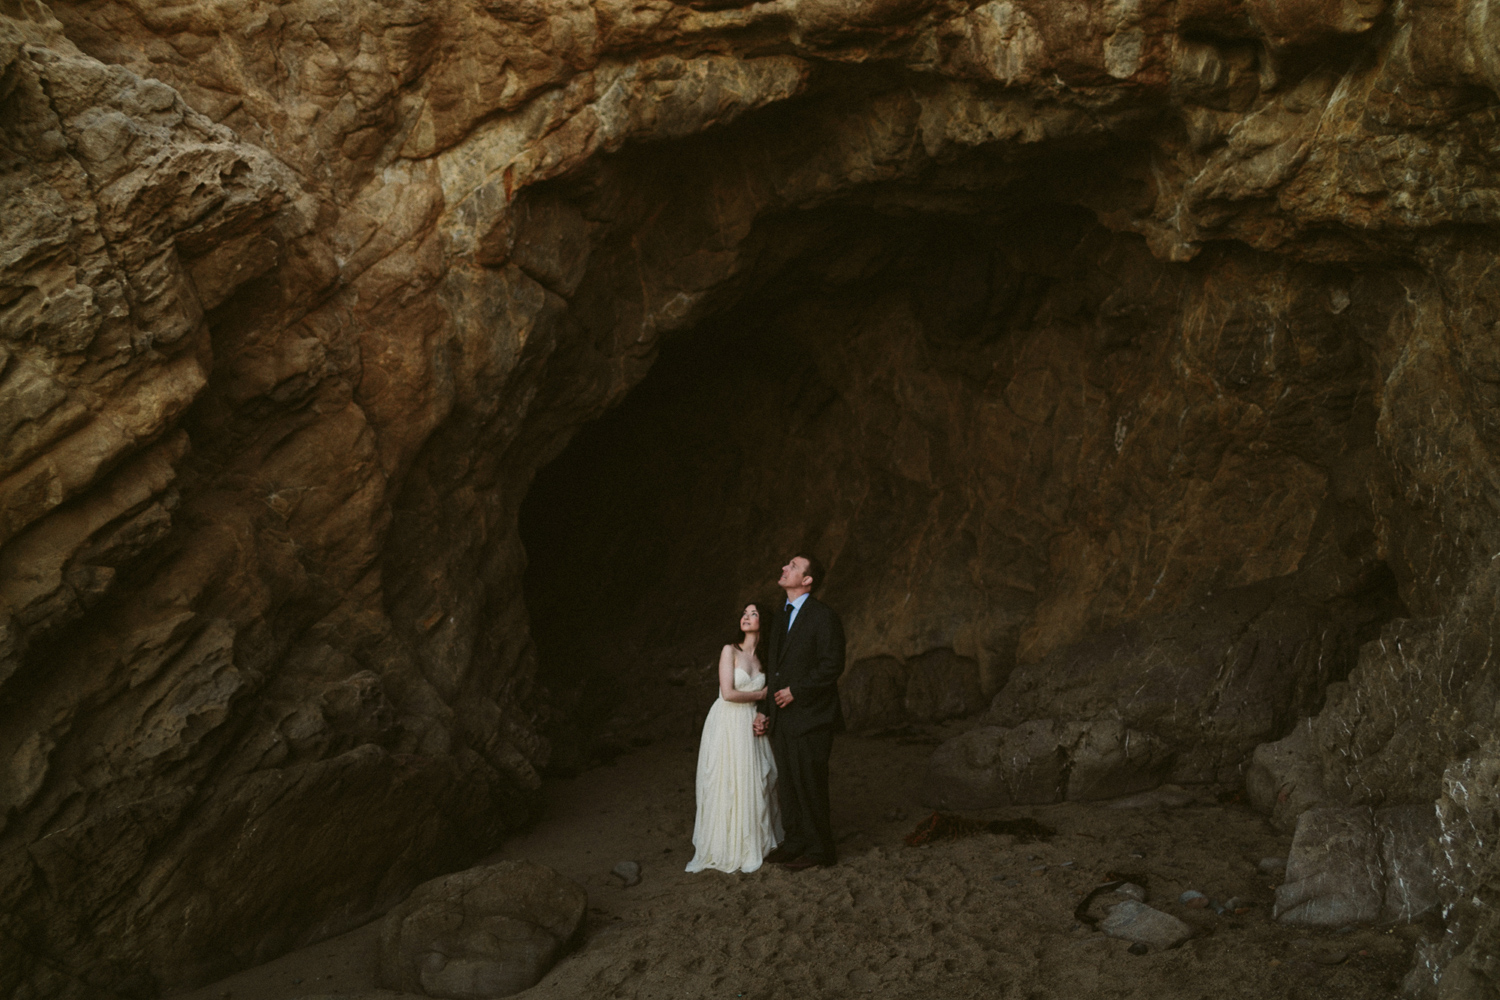 Malibu adventure elopement